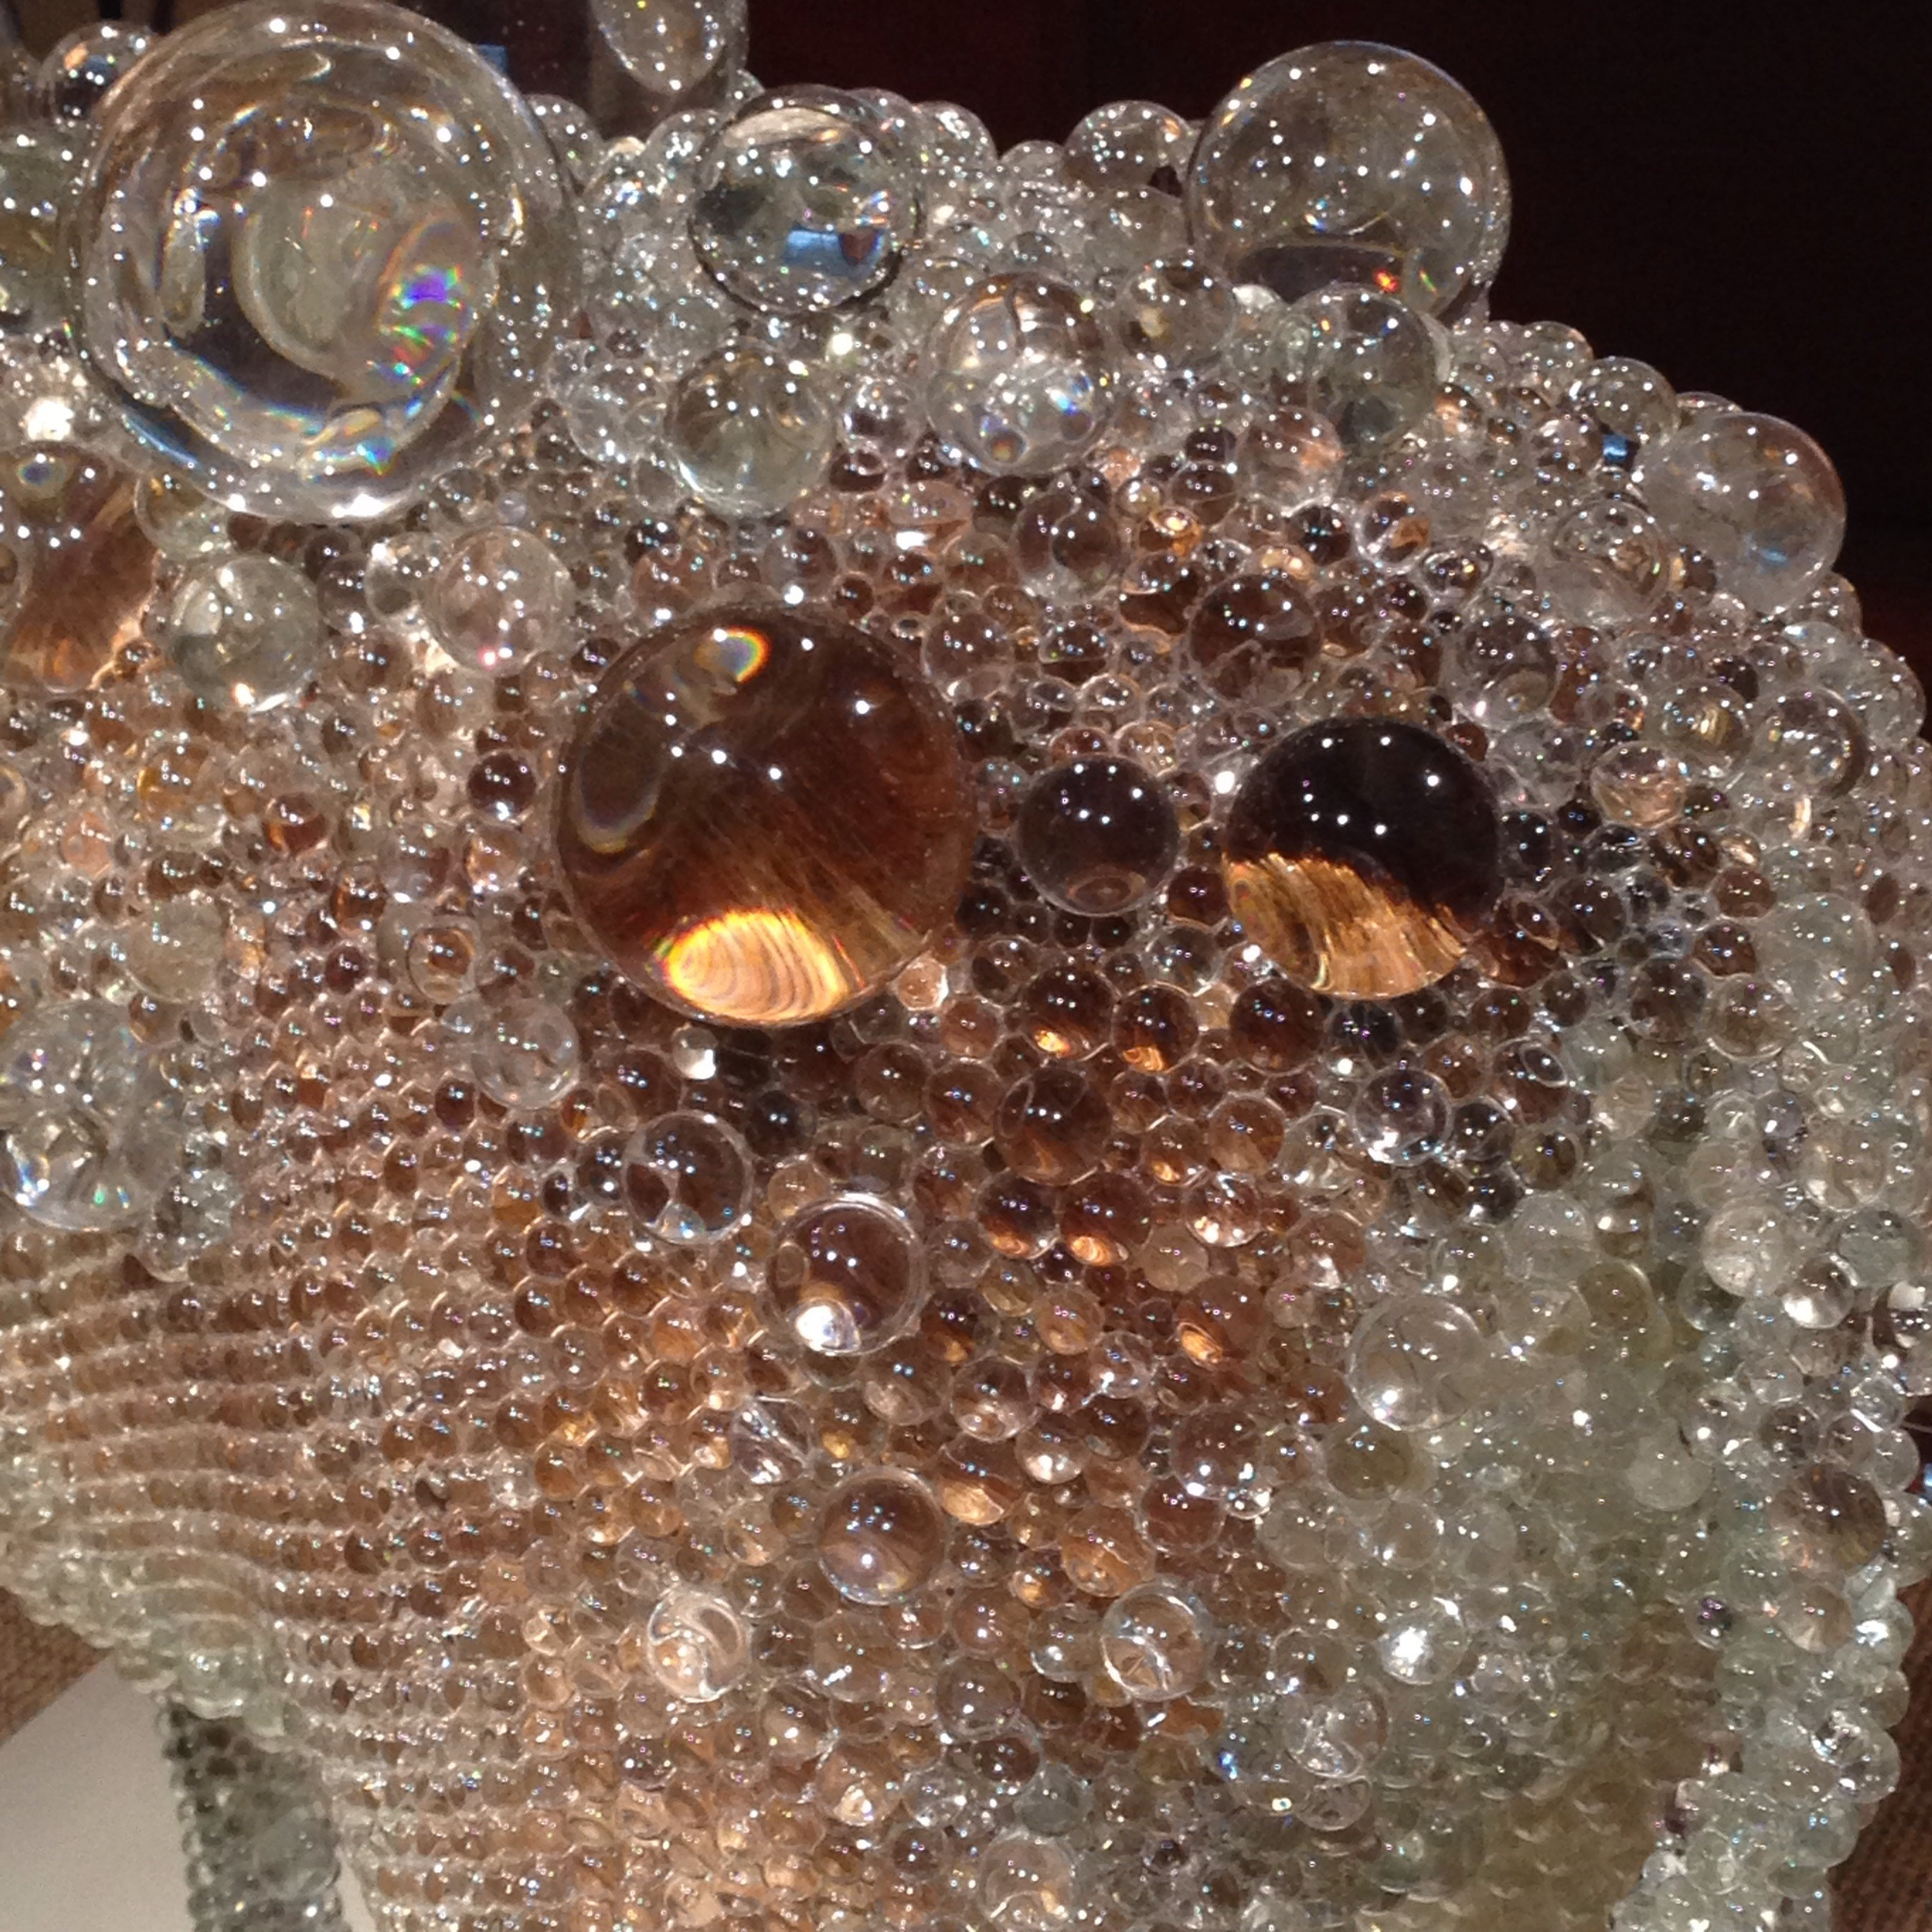 Glossy, smooth, and transparent glass bubbles.